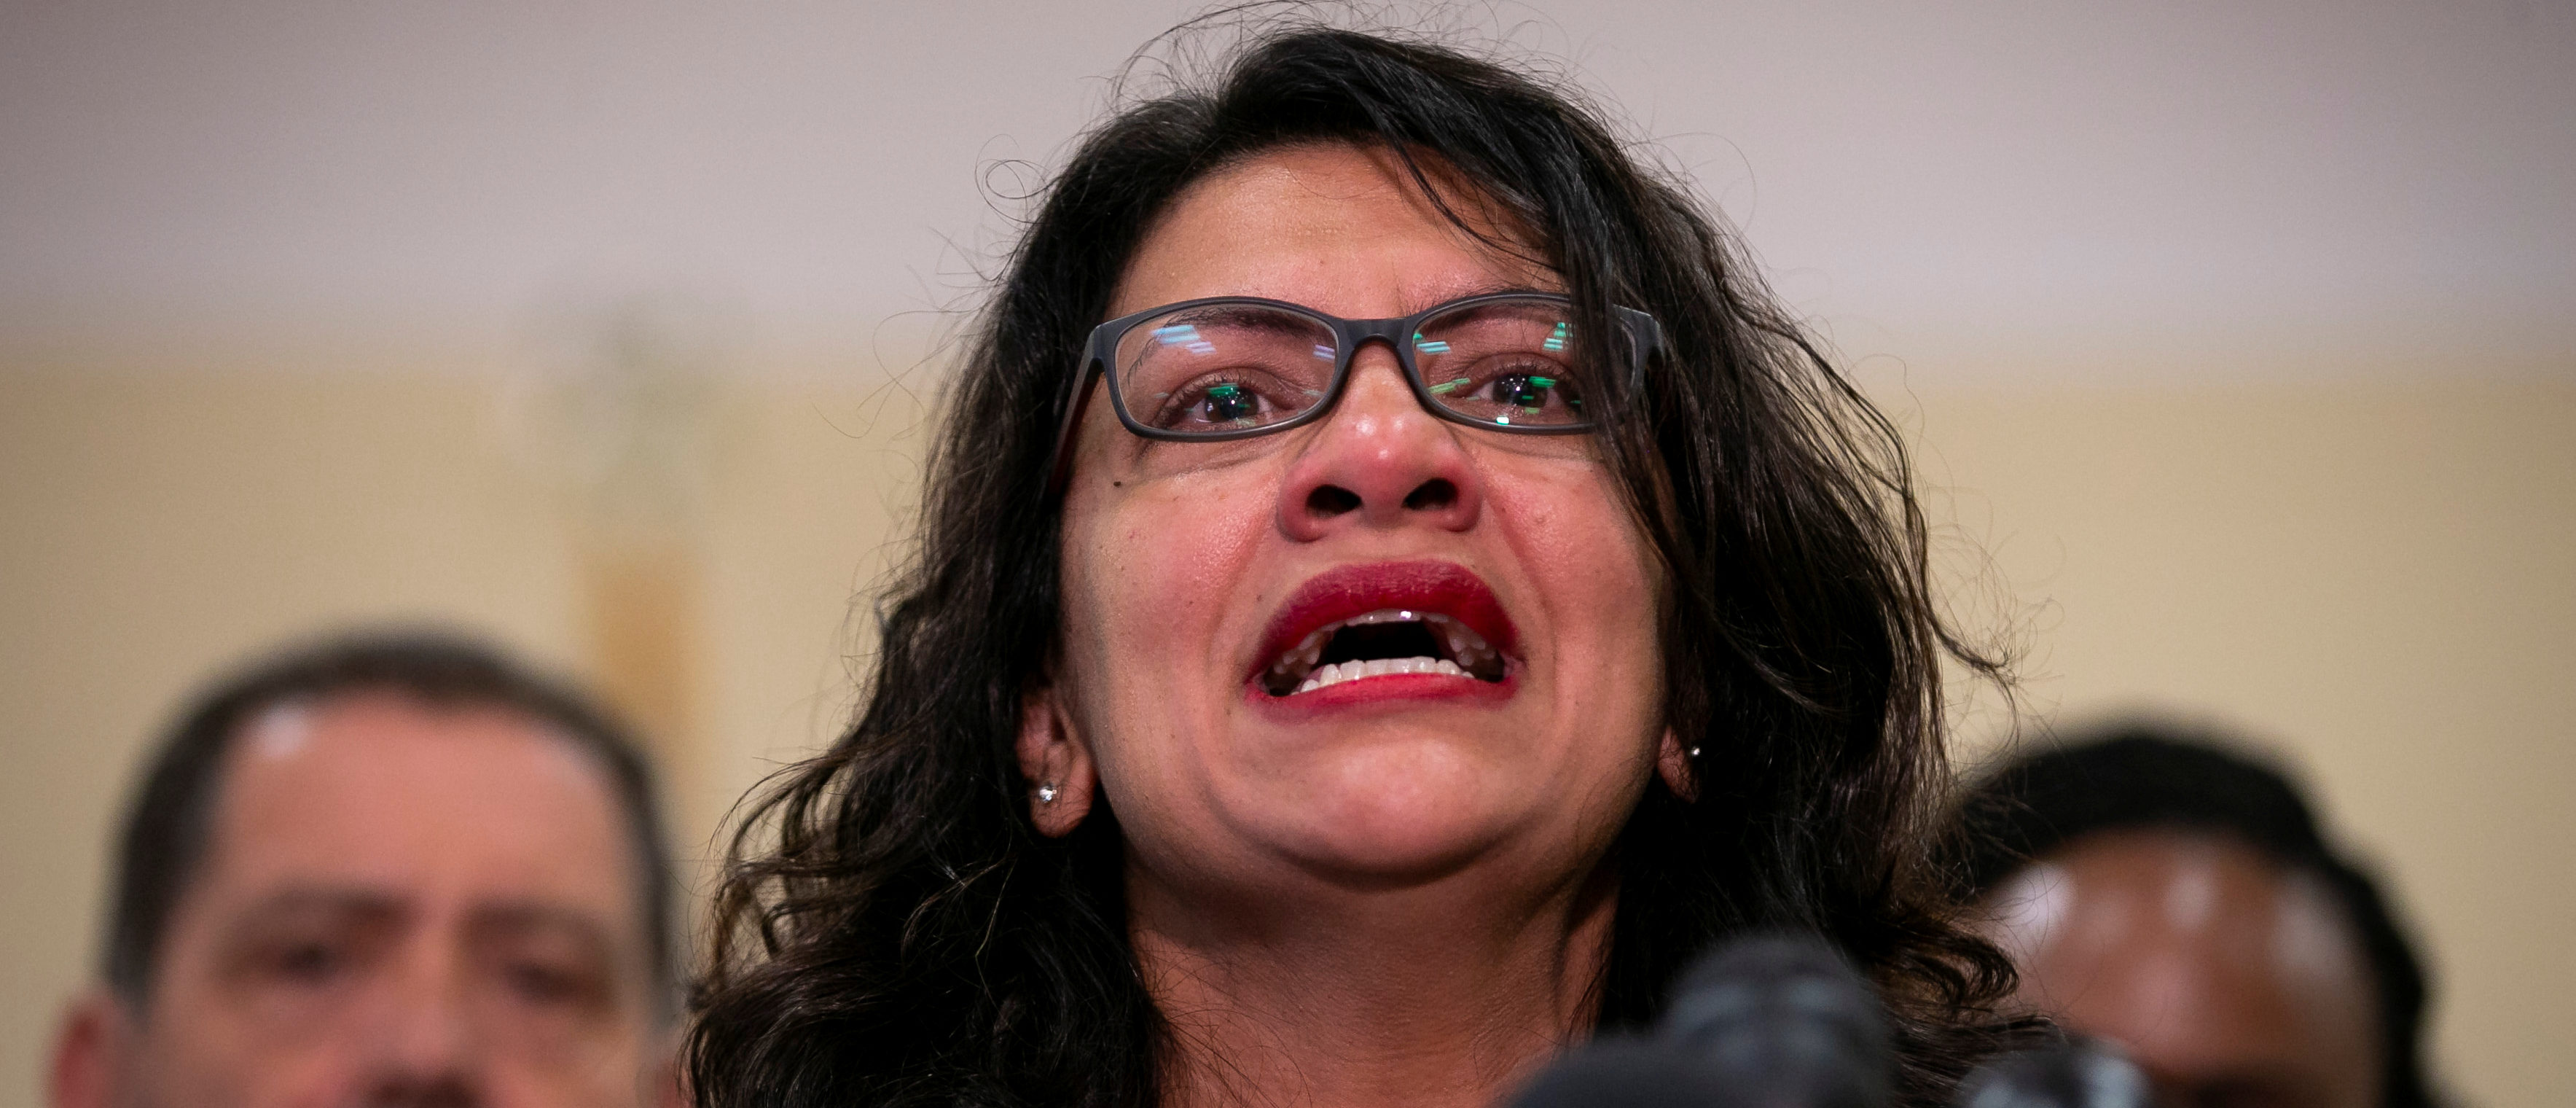 Representative Rashida Tlaib (D-MI) speaks during a news conference with Yazmin Juarez, mother of 19-month-old Mariee, who died after detention by U.S. Immigration and Customs Enforcement (ICE), on Capitol Hill in Washington, U.S., July 10, 2019. REUTERS/Al Drago